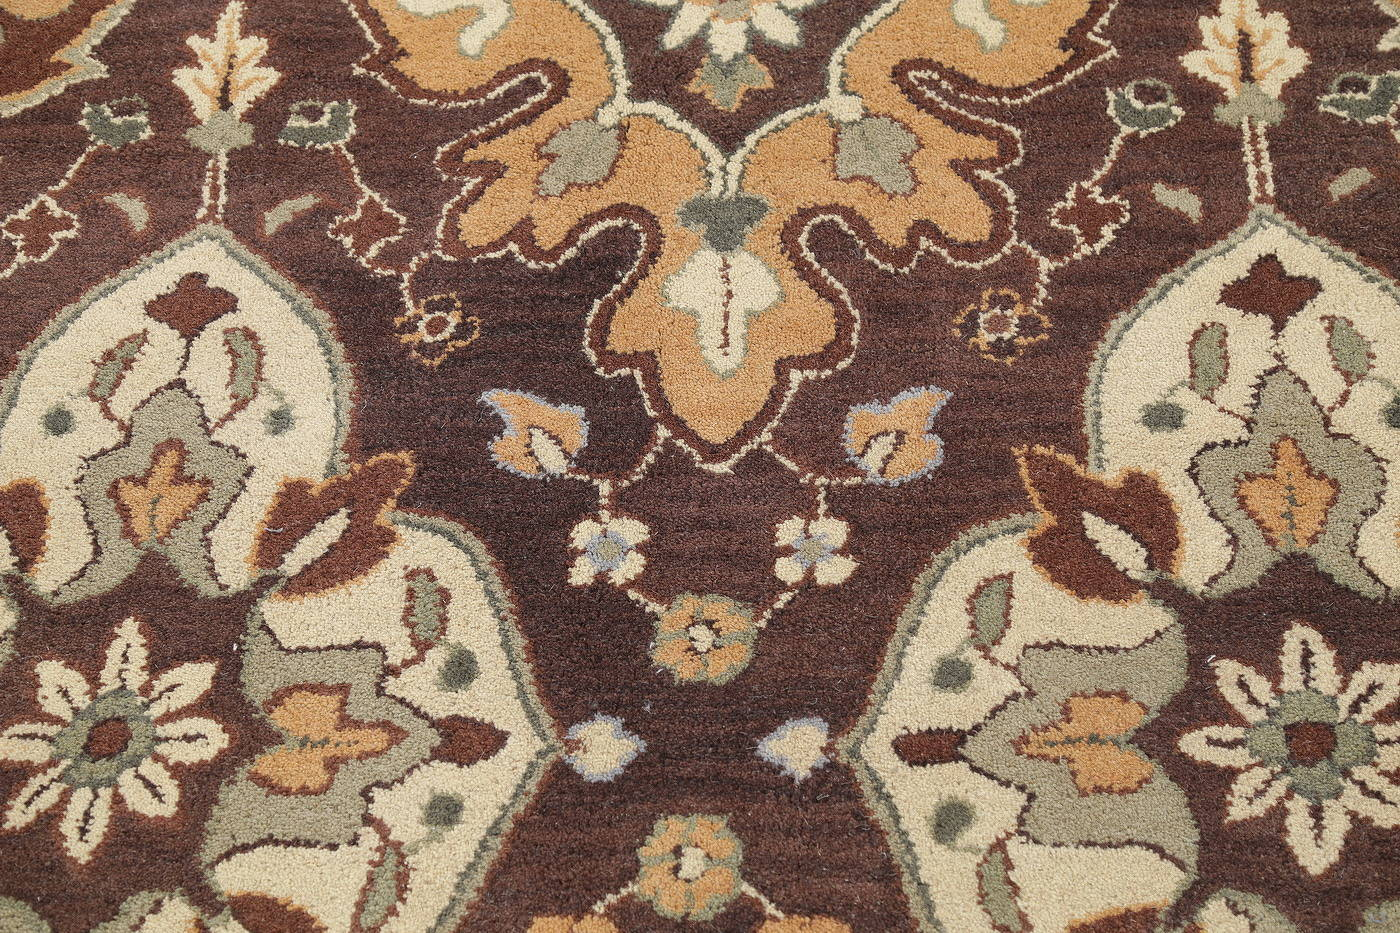 Floral Hand-Tufted Indian Oriental Area Rug 7x10